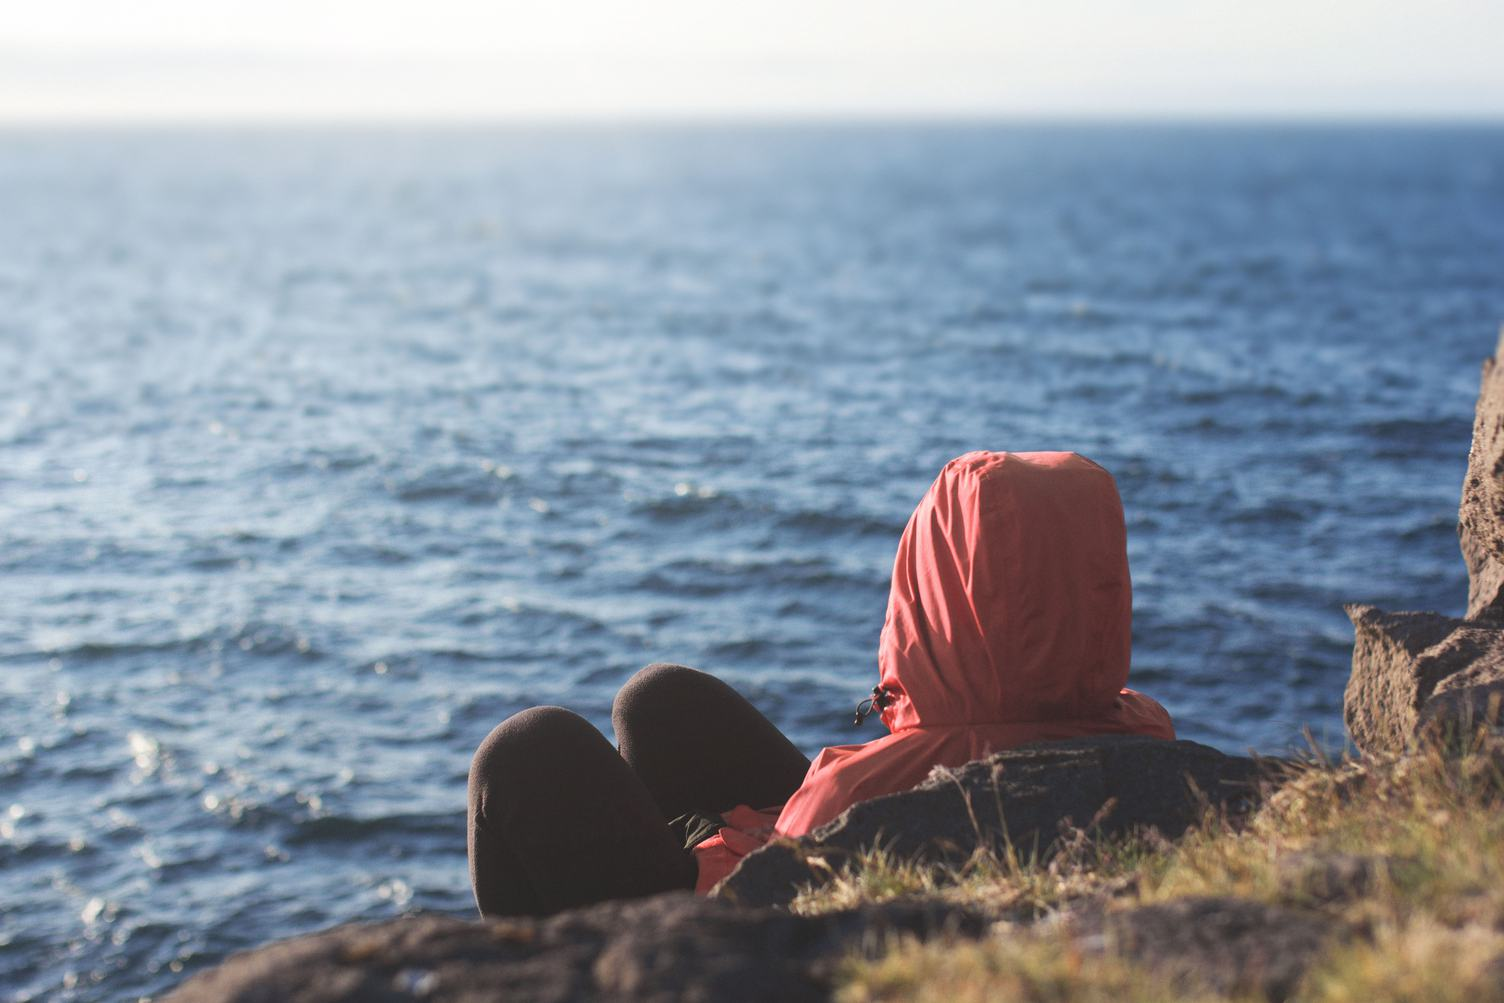 A Hooded Person Sitting on a Cliff Overseeing the Sea